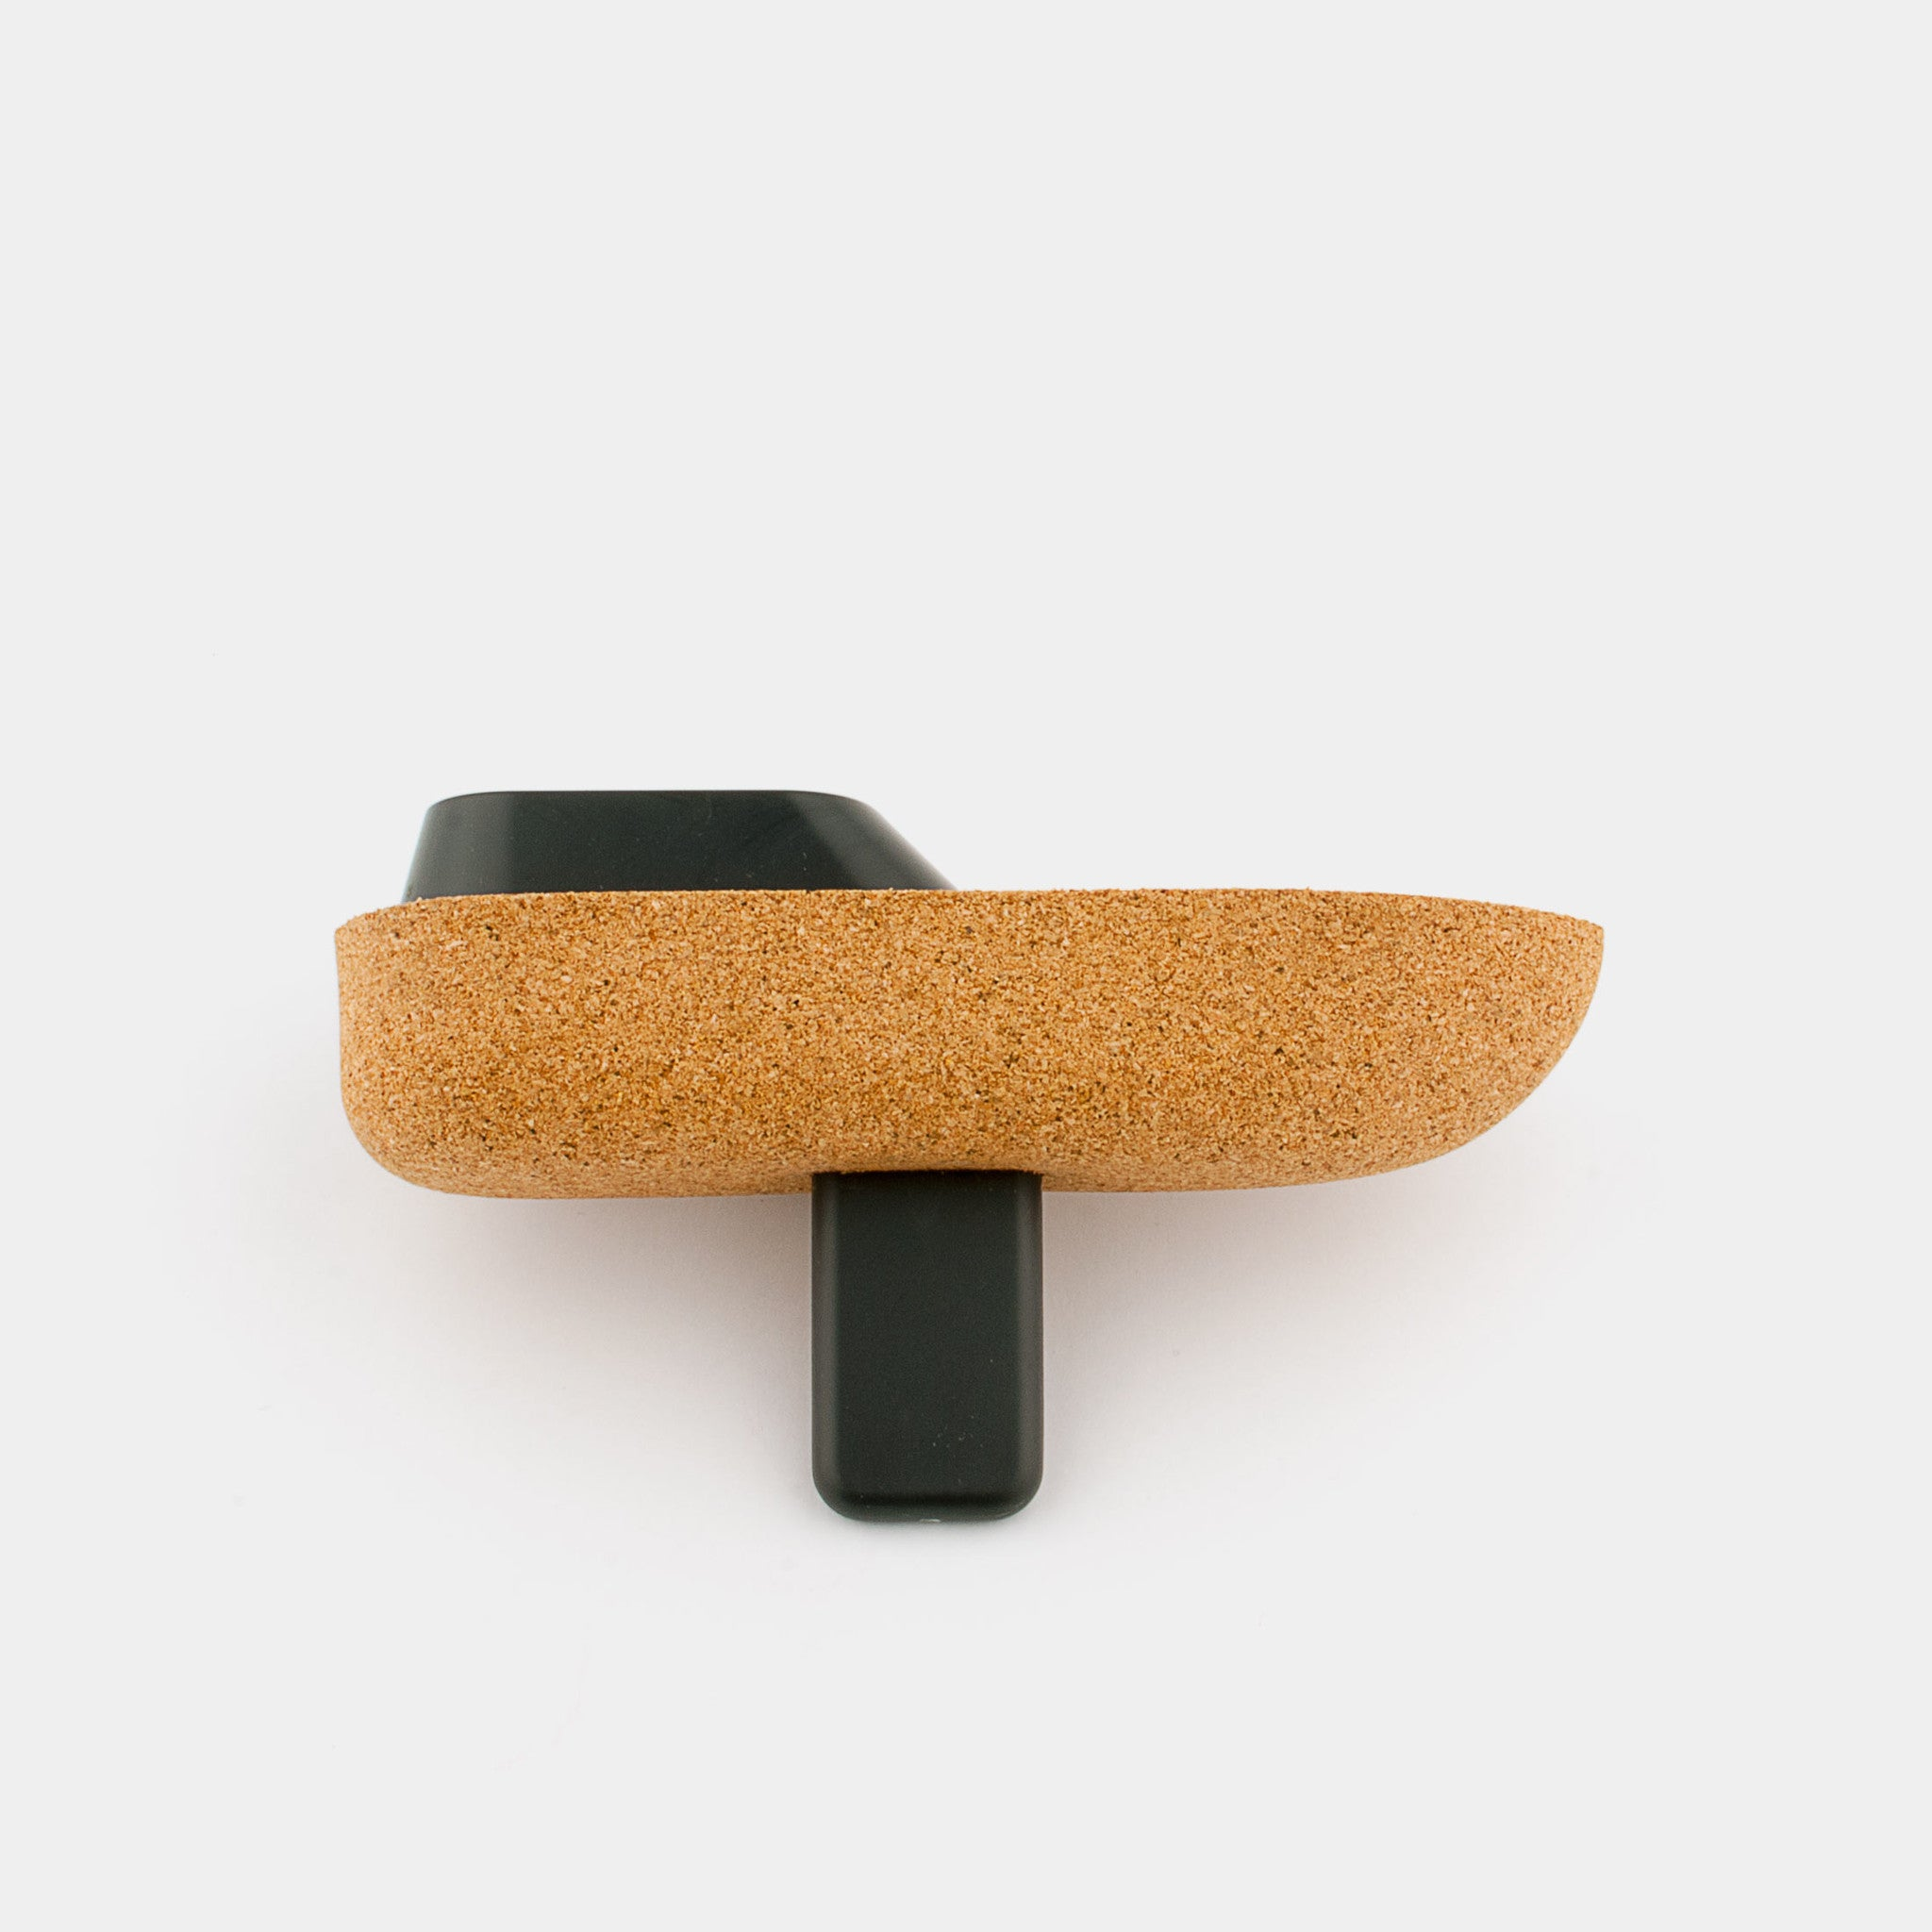 This cork Sail Boat is a beautiful bath toy, designed in 2011 by the Swiss design studio Big Game, in collaboration with the Portuguese cork company Materia.